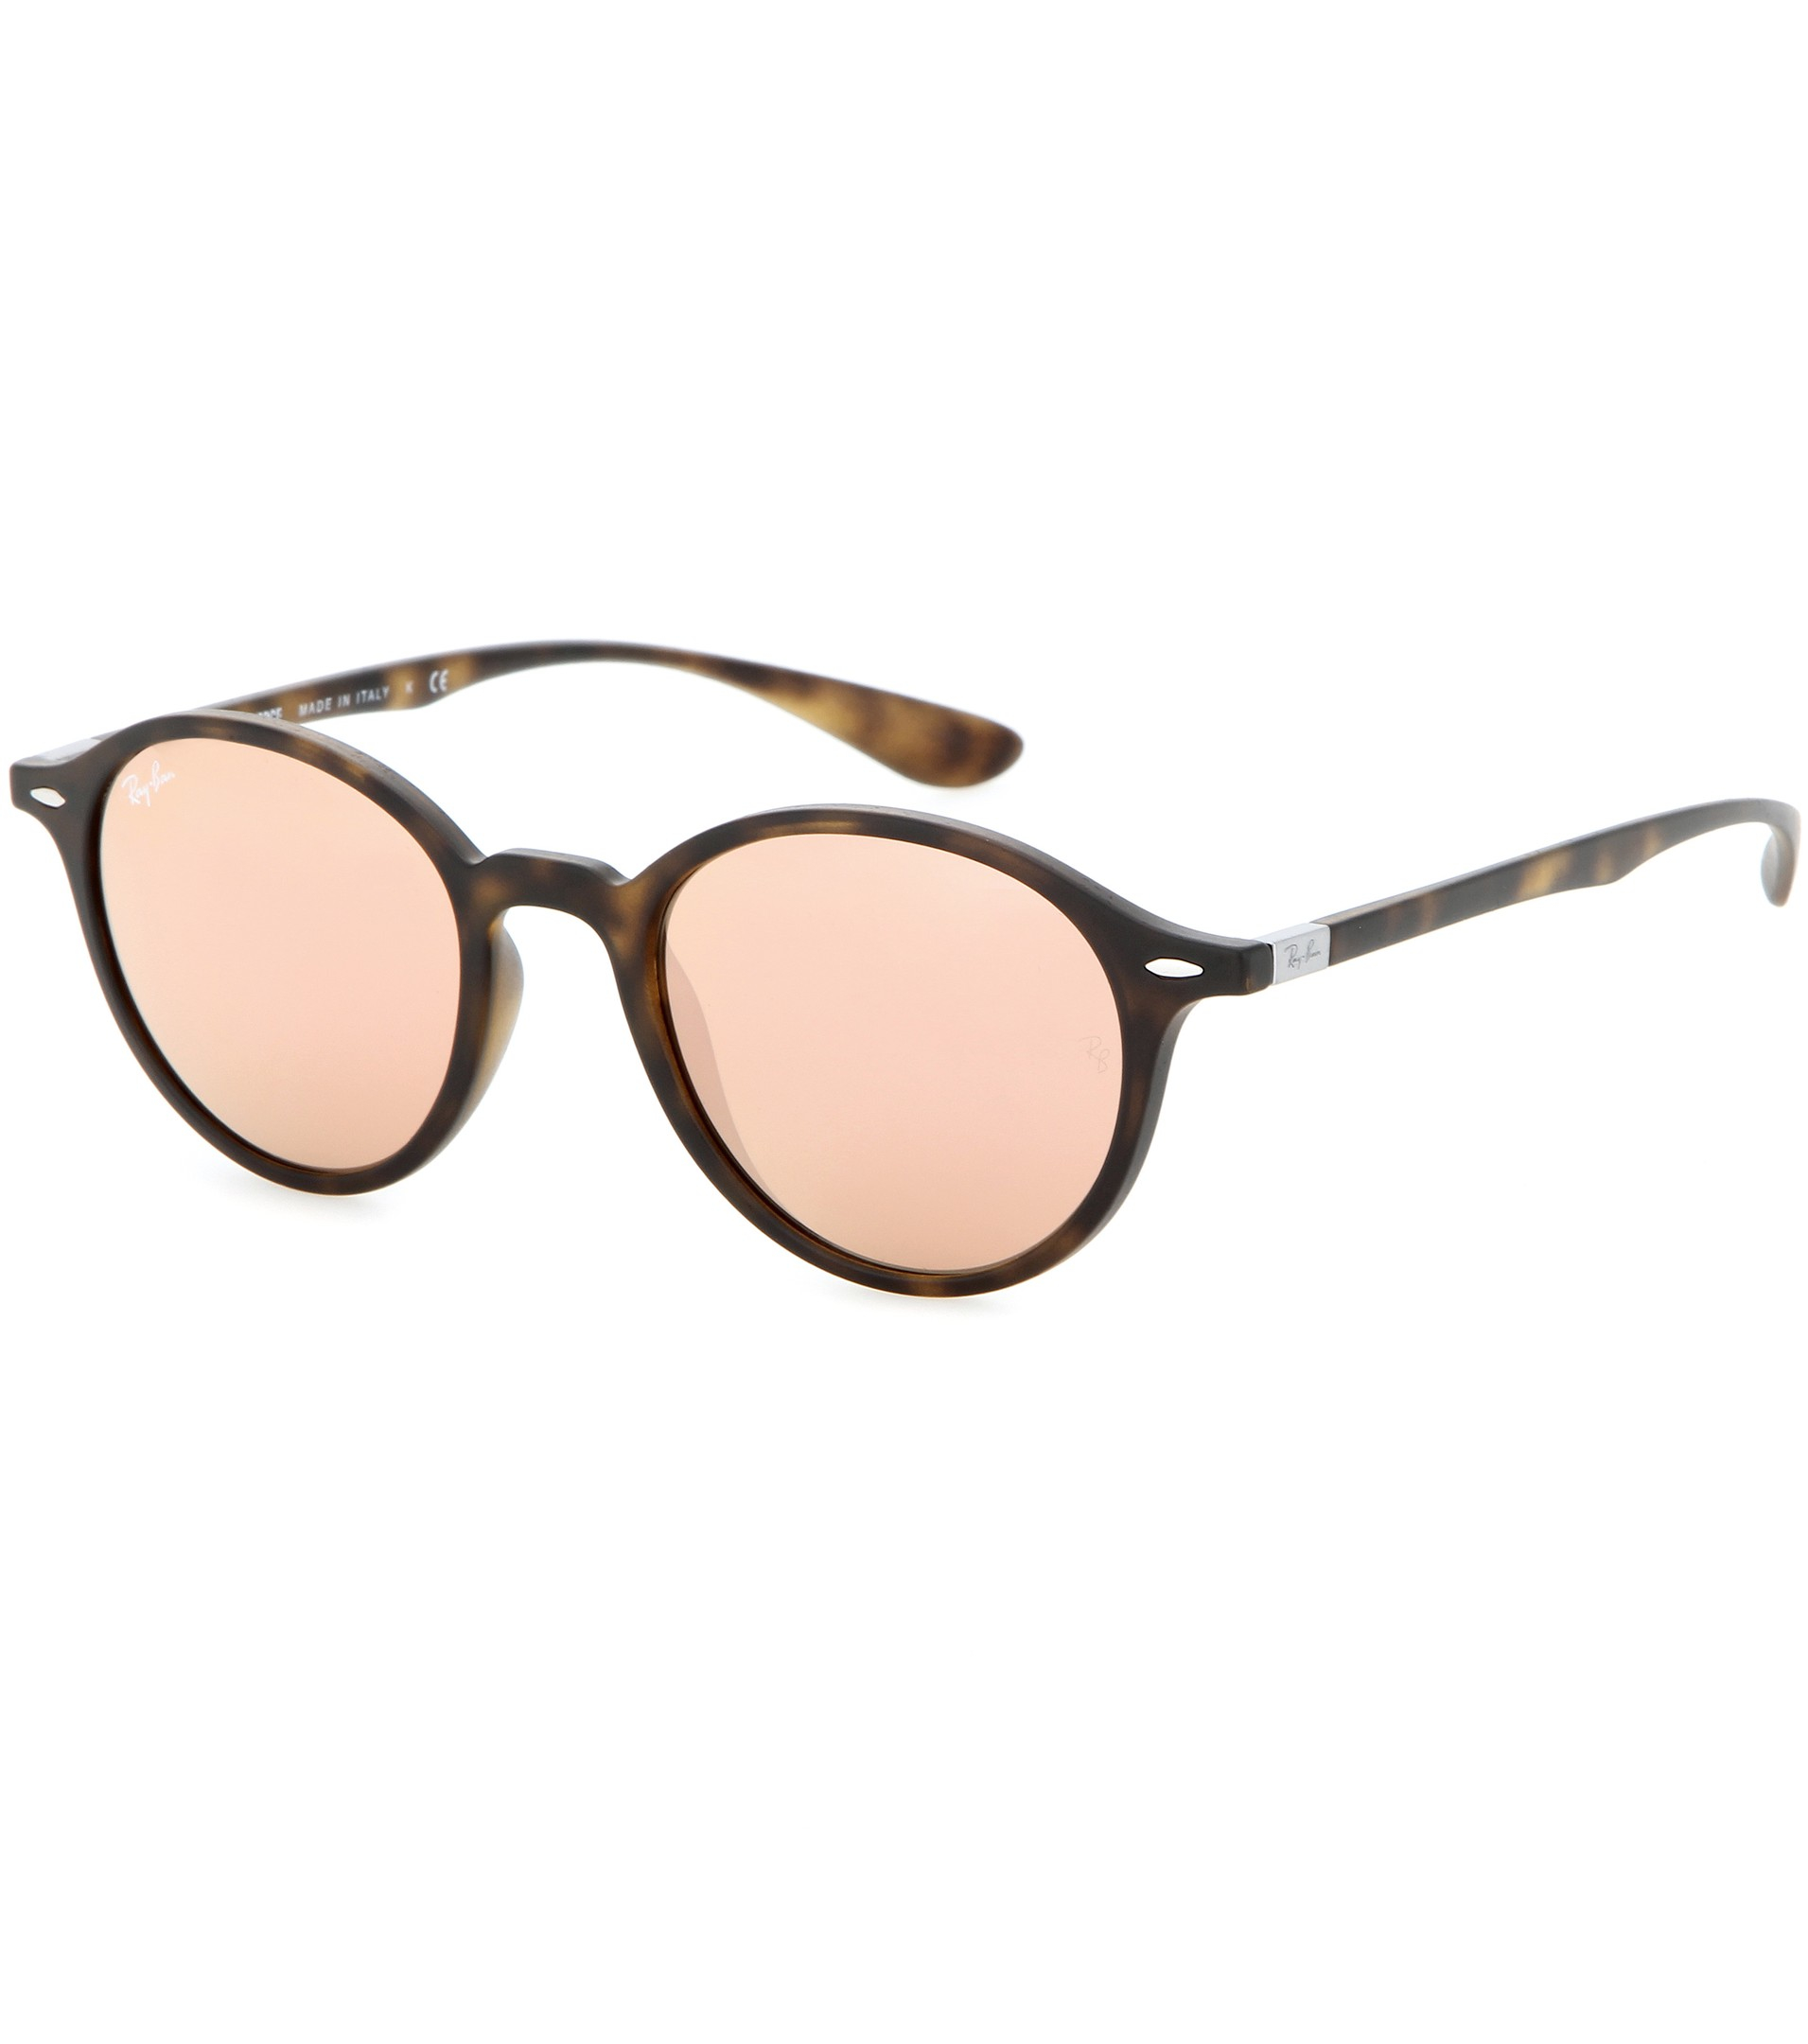 Lyst - Ray-Ban Rb4237 Mirrored Round Sunglasses in Pink